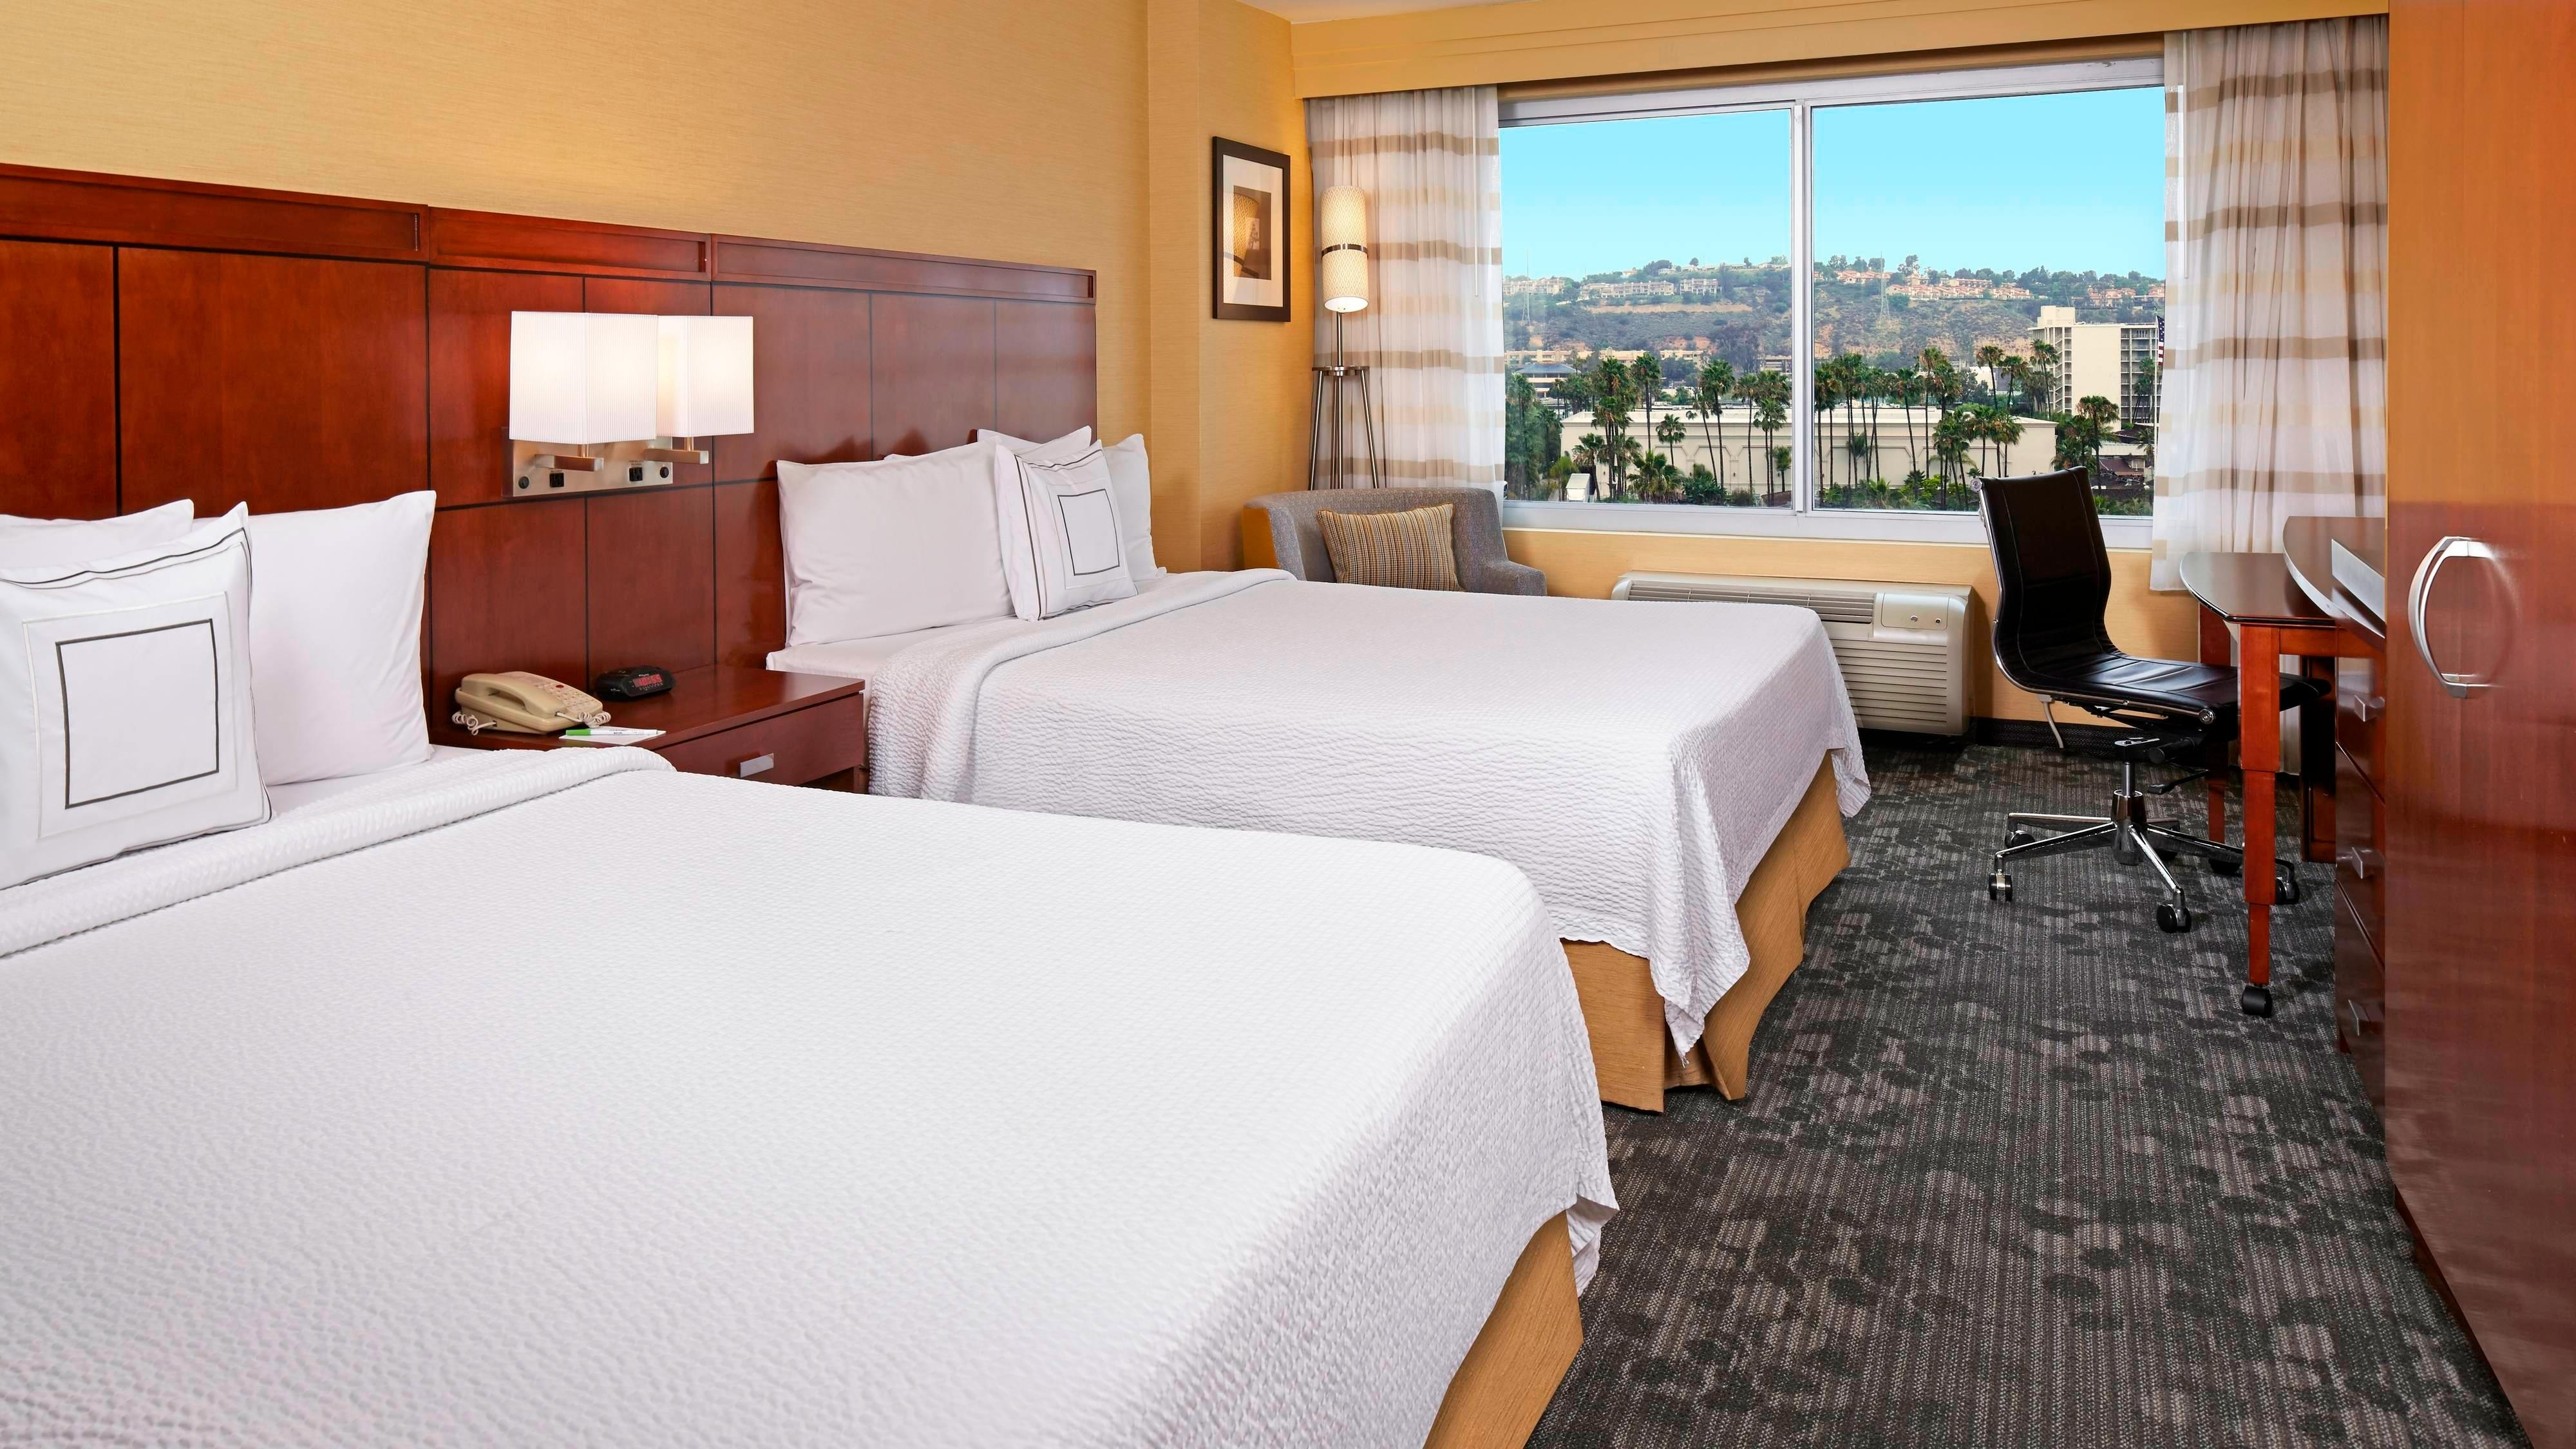 Mission Valley hotel room